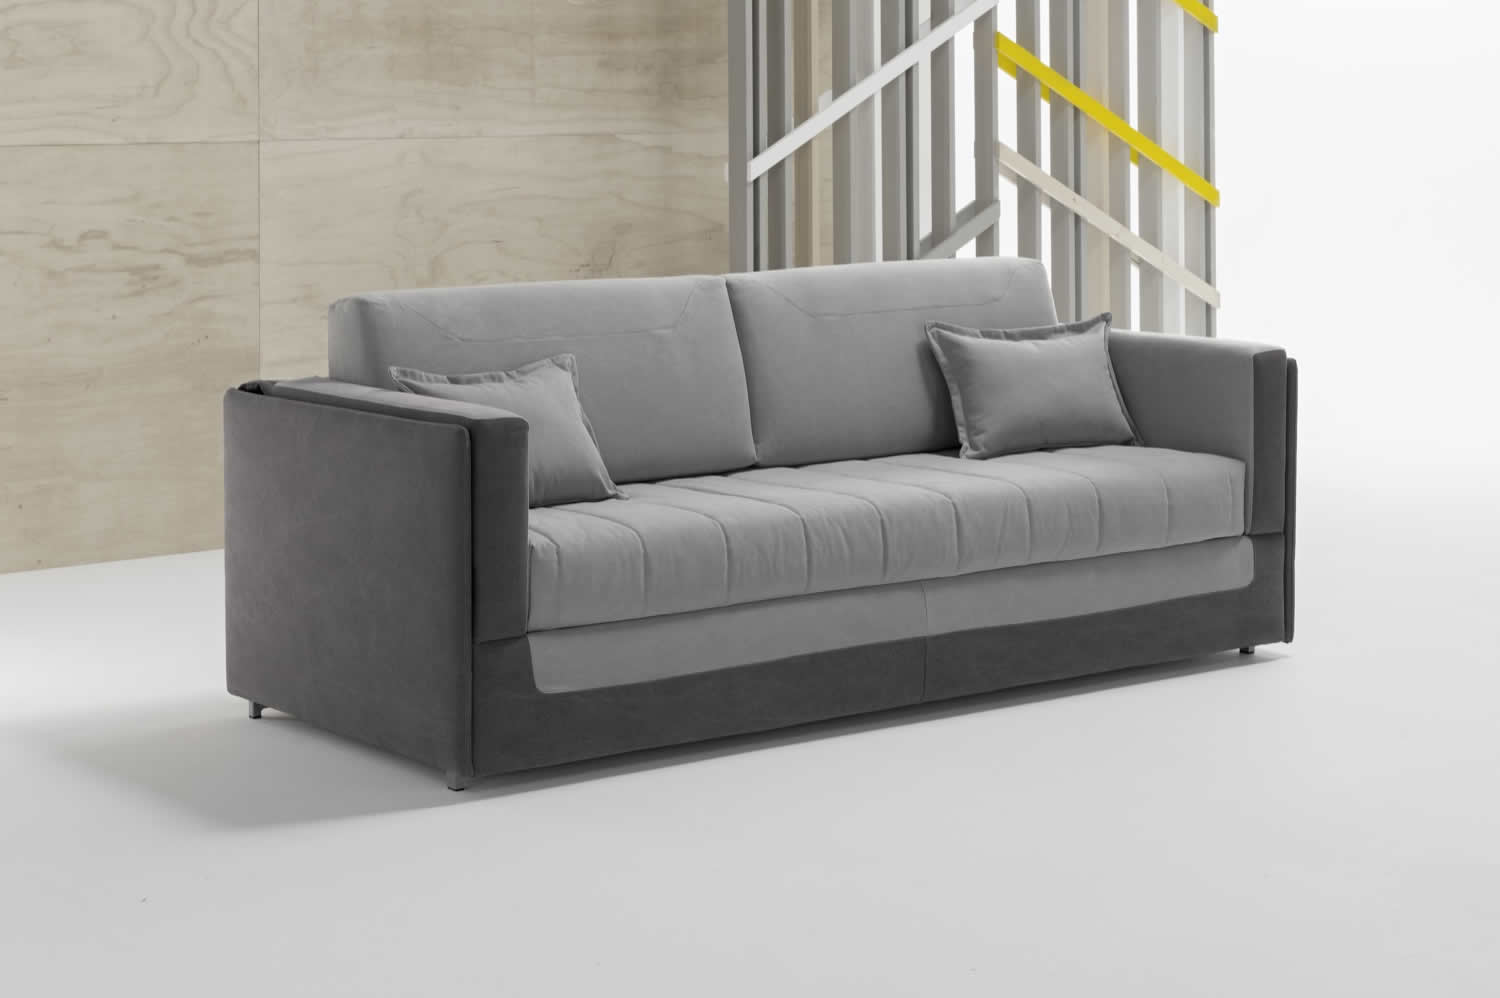 Design Attack Schlafsofas Sofa Design Berlin Schlafsofa Berlin Kaufen Luxus Chesterfield